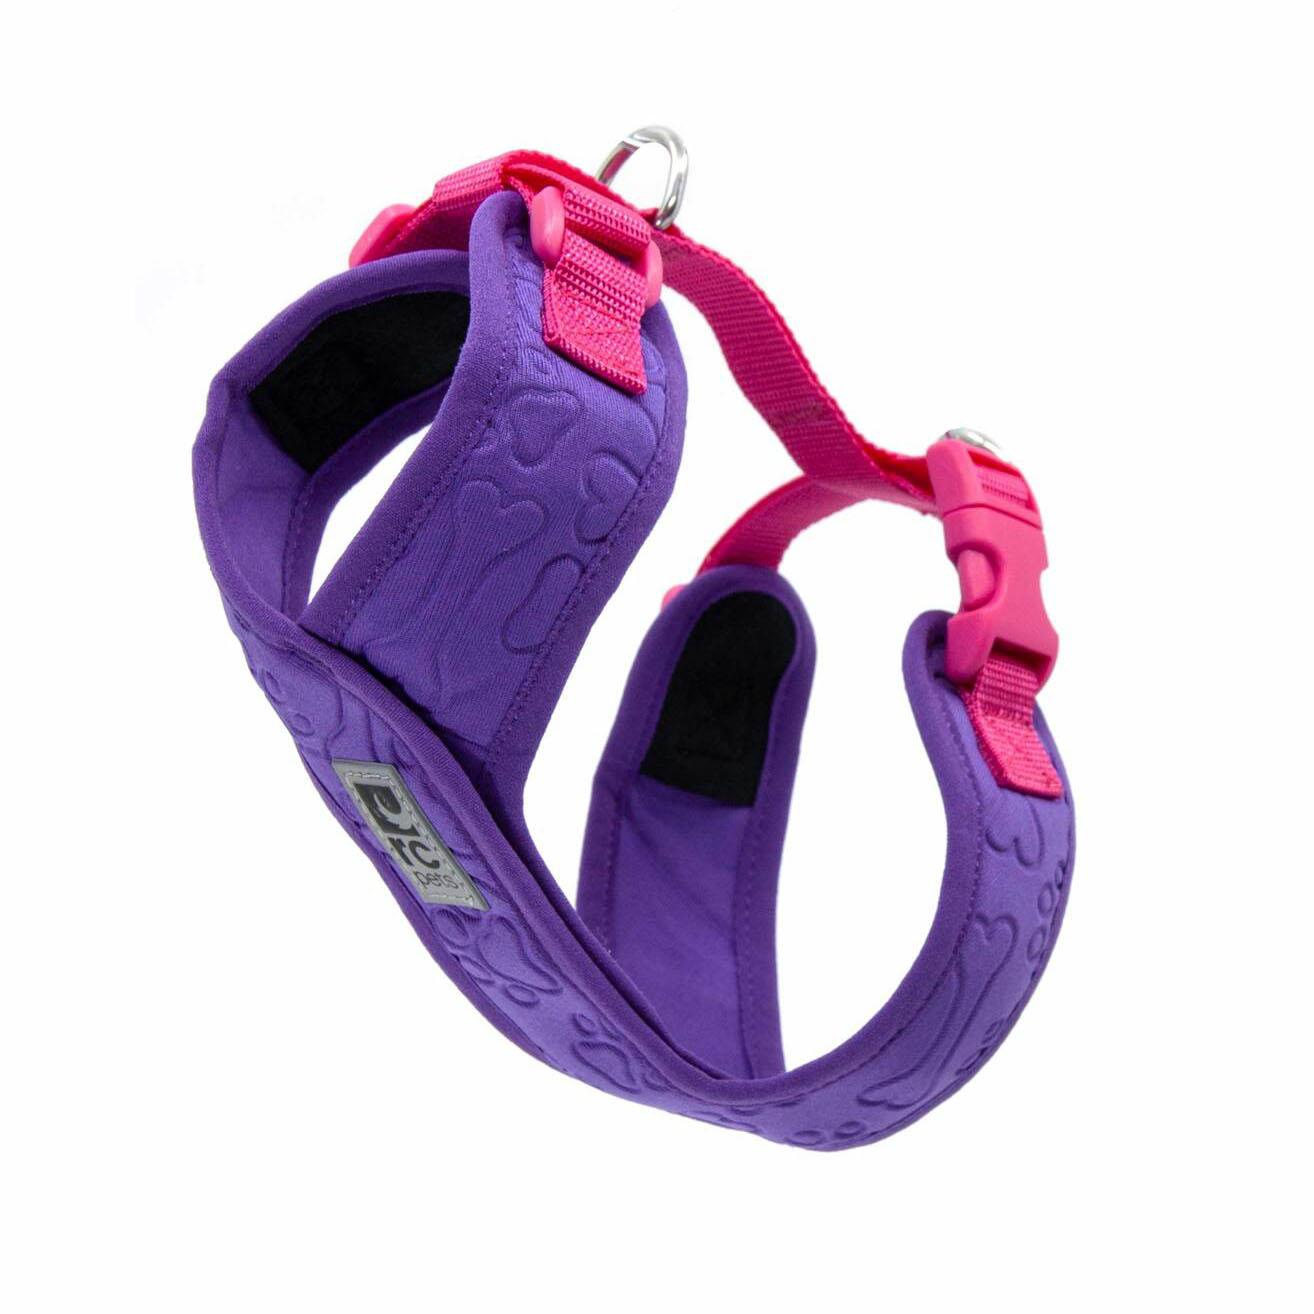 RC Pet Products Swift Comfort Dog Harness, Purple/Pink, XX-Small